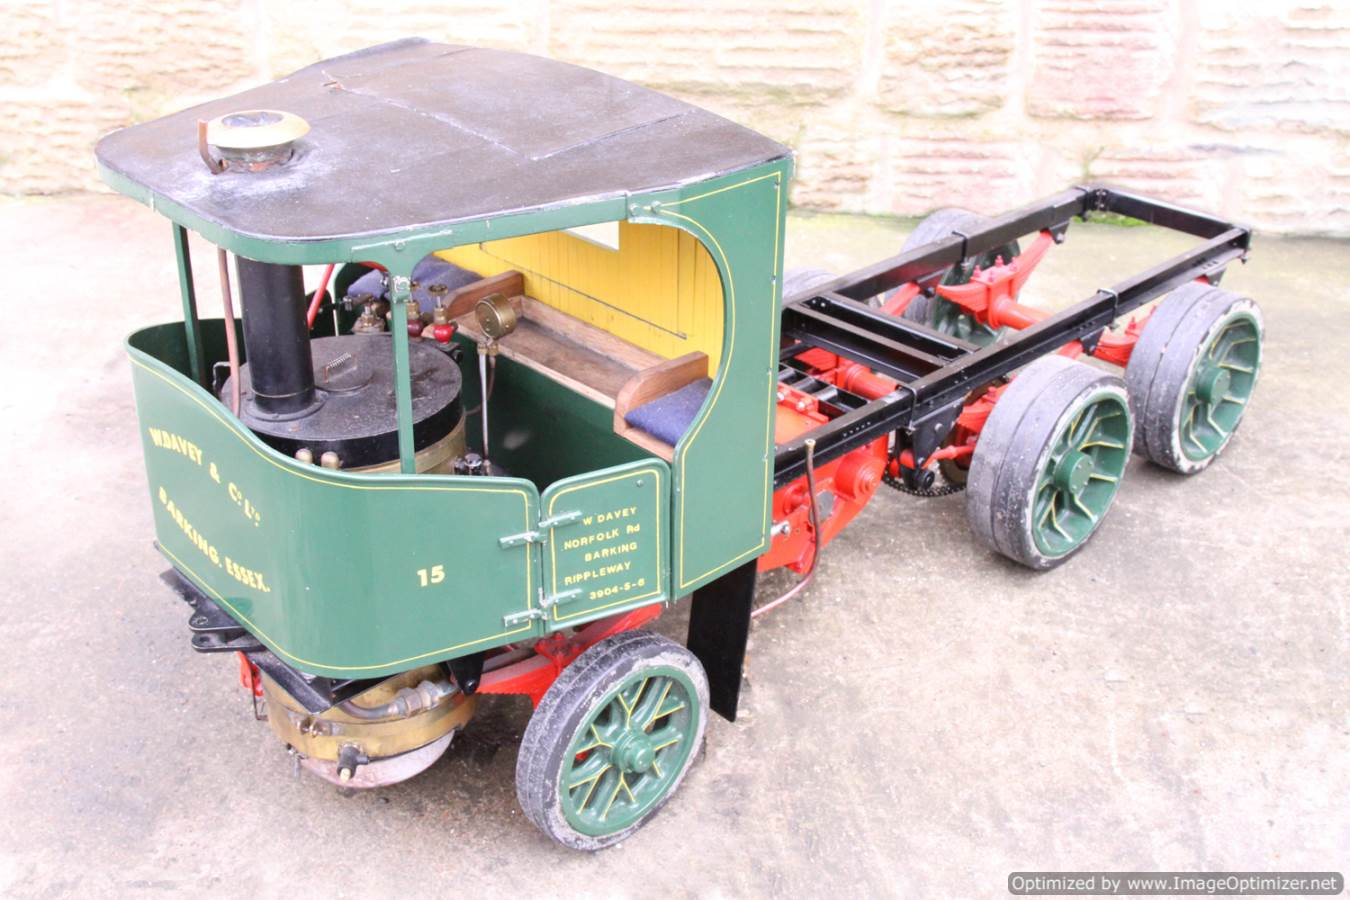 test Cayton twin axle live steam lorry for sale 17 Optimized